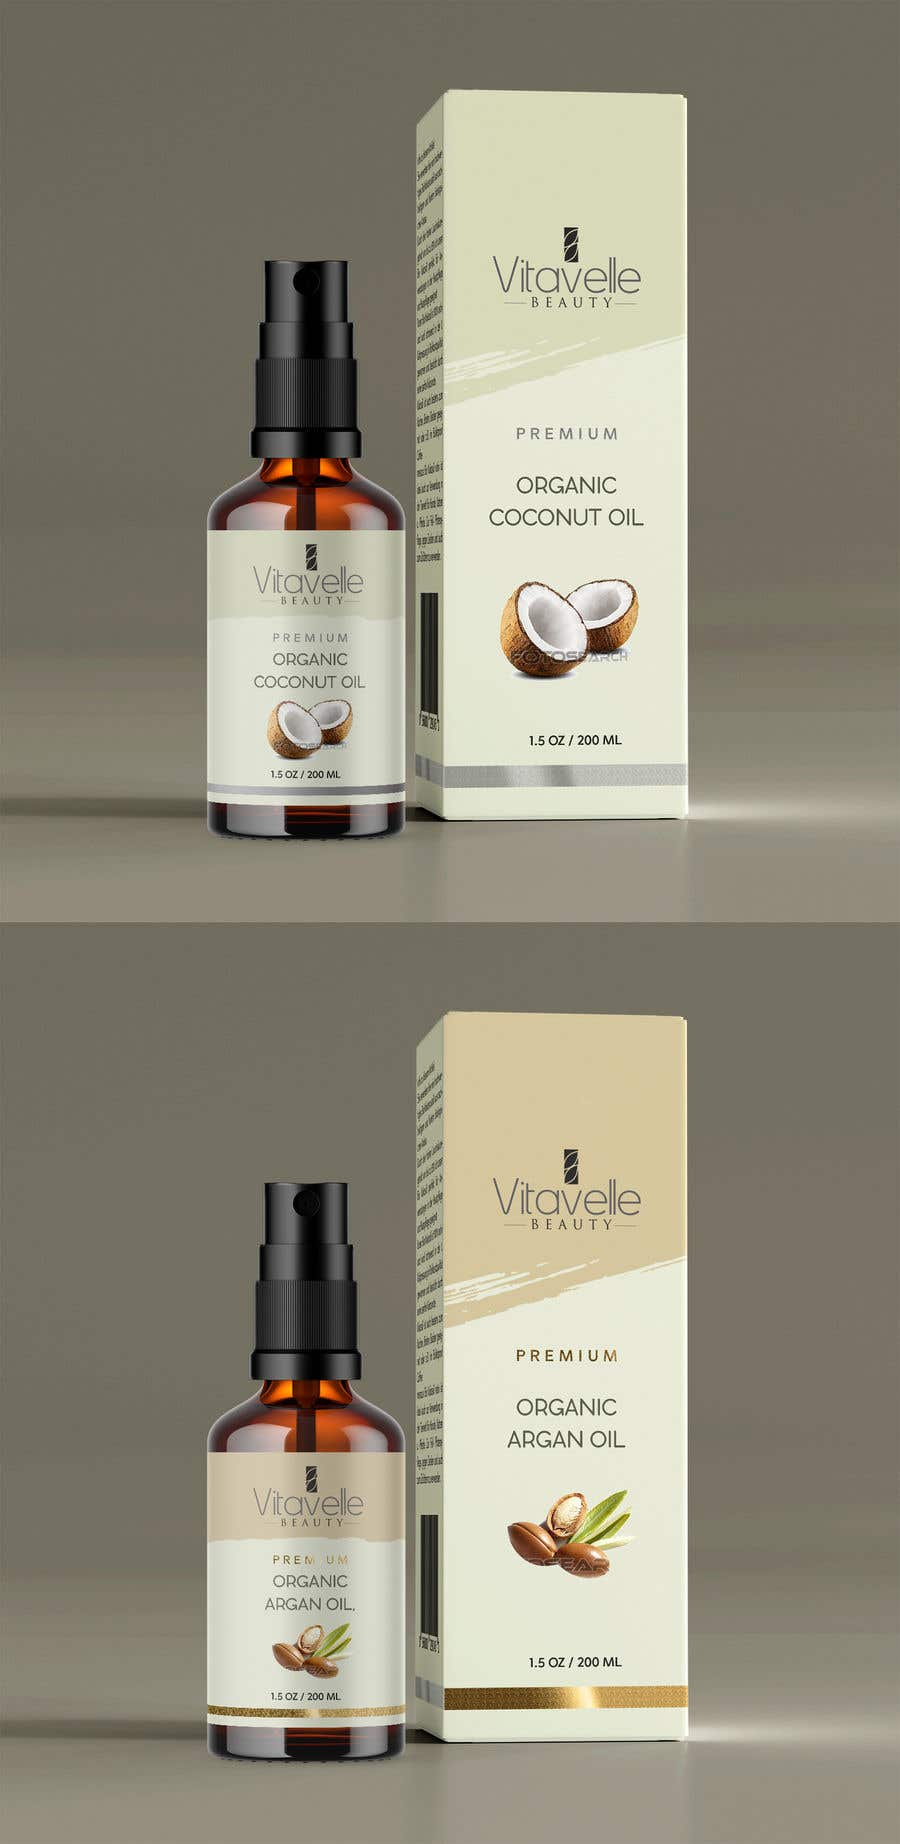 Bài tham dự cuộc thi #                                        60                                      cho                                         Create Product Label and Packaging Designs